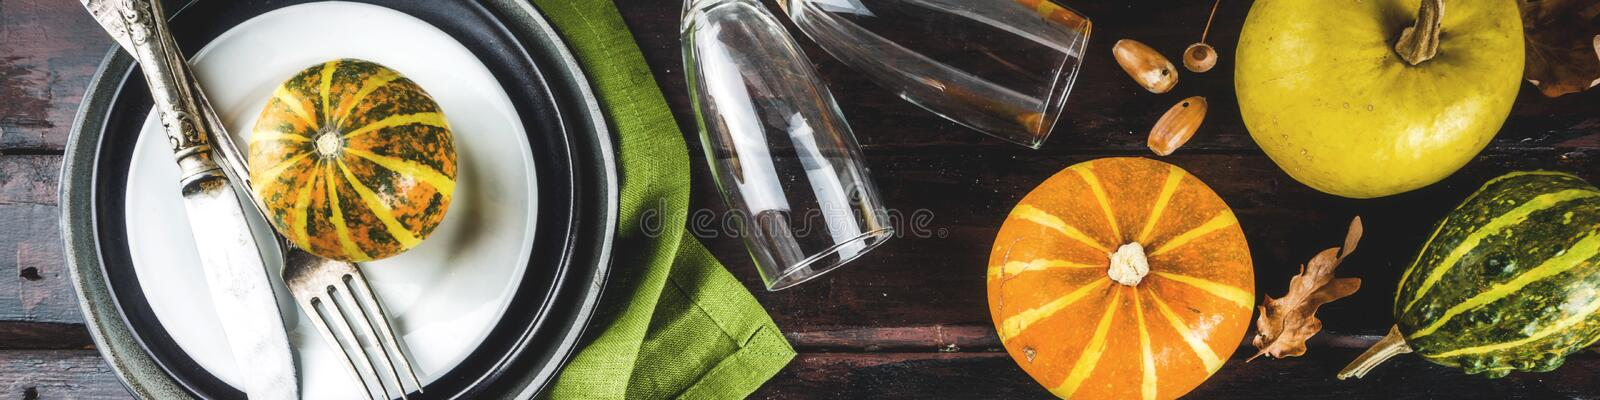 Autumn and thanksgiving table setting royalty free stock image